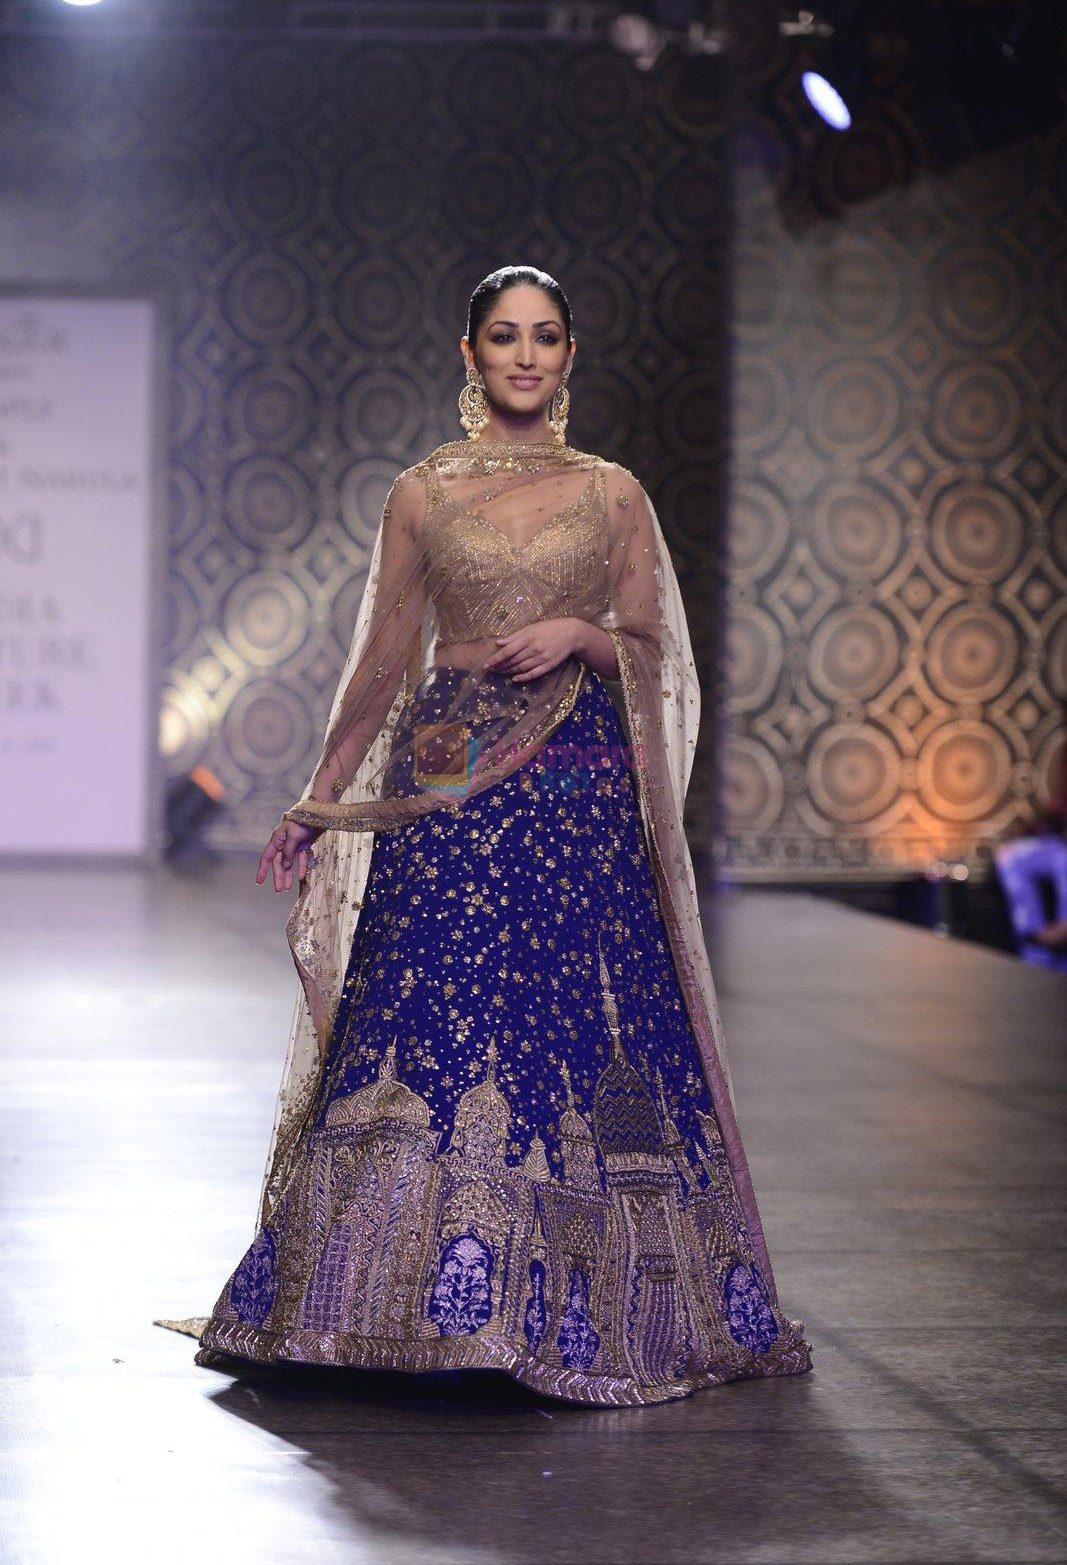 Yami Gautam to walk for Rimple, Harpreet Narula at ICW